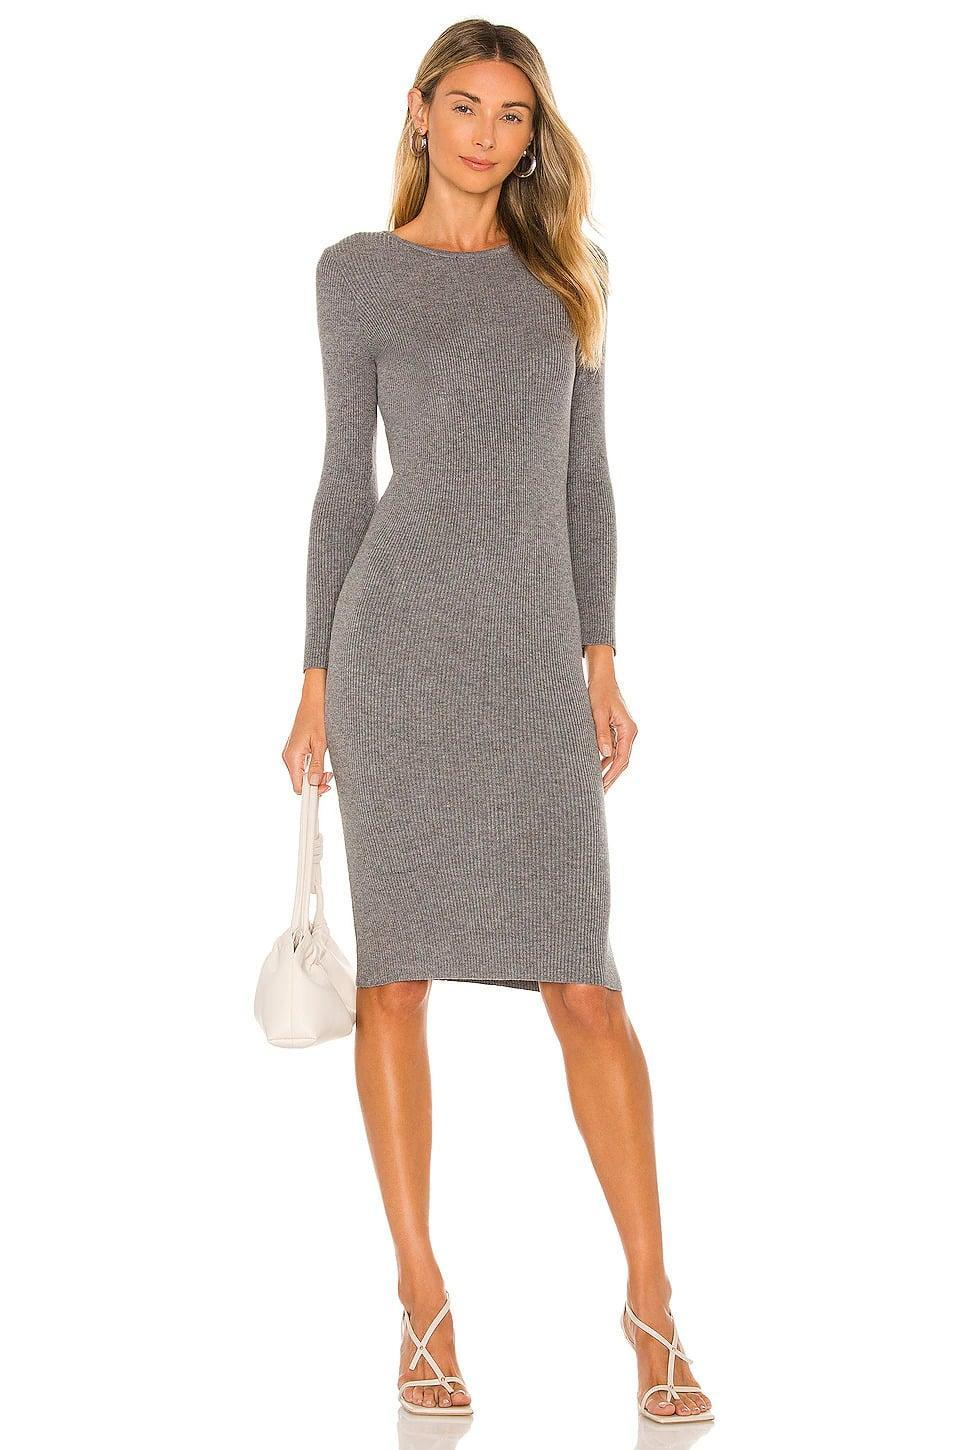 <p>You can't go wrong with the <span>All The Ways Makena Midi Dress in Grey</span> ($64). It's soft and flattering, plus it can be dressed down for a casual day at the pumpkin patch or dressed up for a night out with friends.</p>